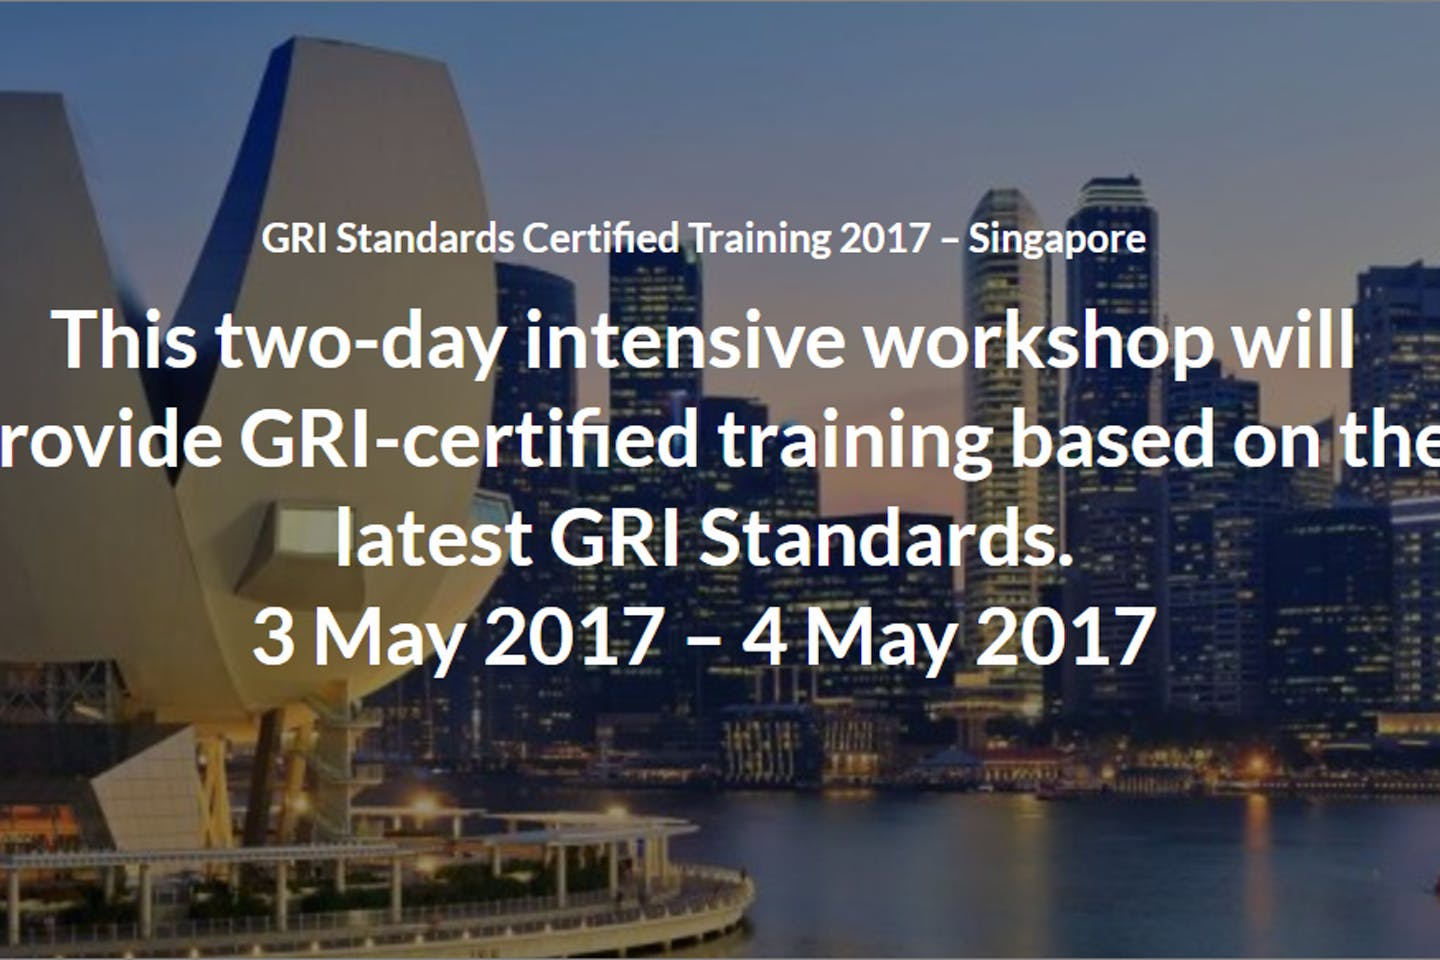 GRI Standards Certified Training (Sustainability Reporting) in Singapore